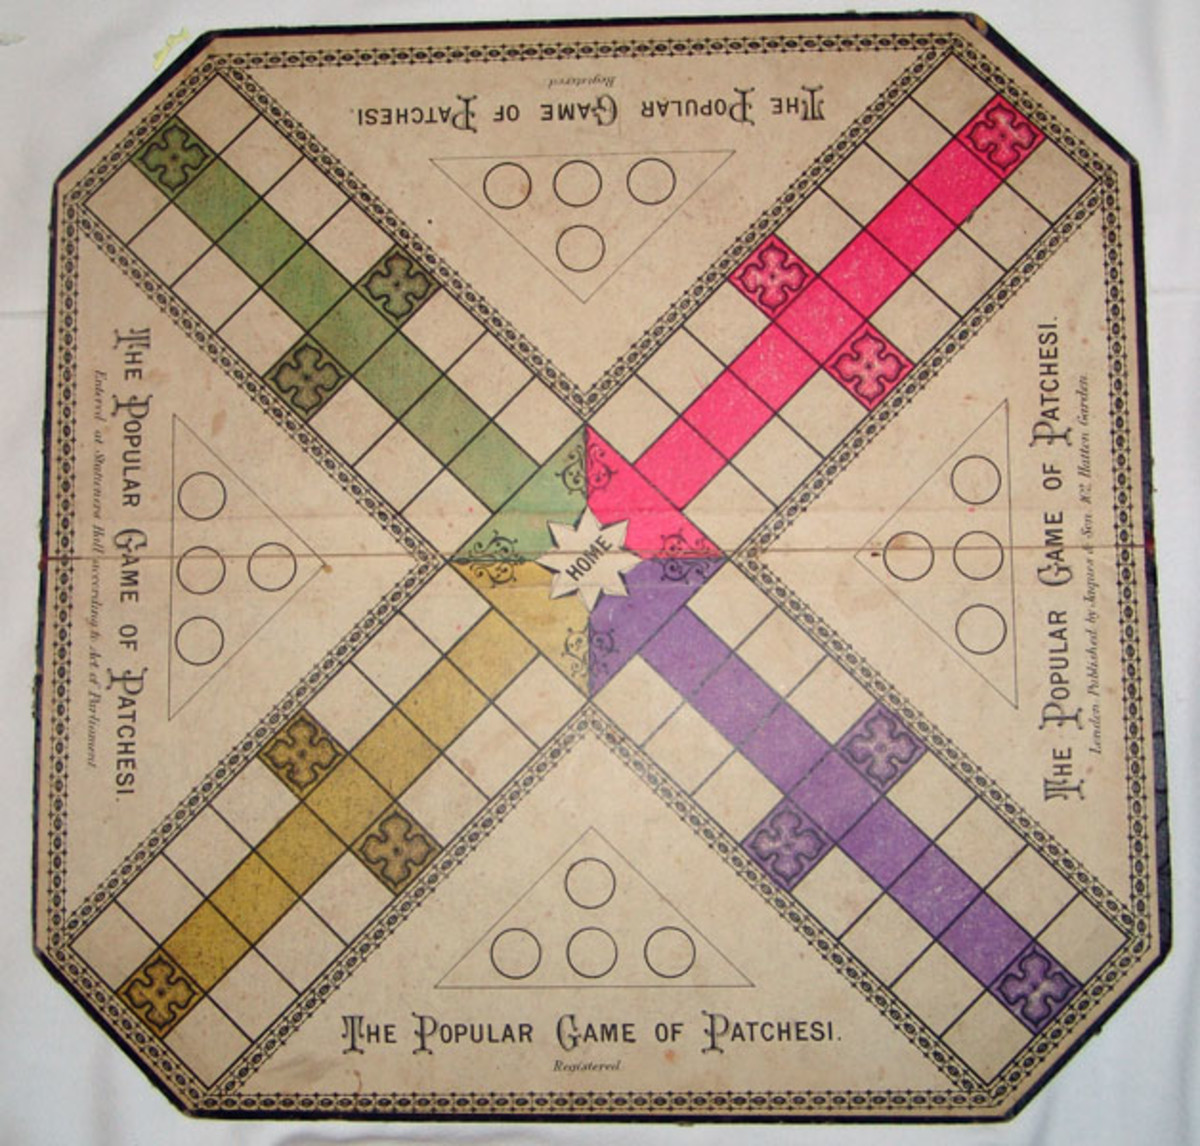 Early Parcheesi Board (courtesy of Rick Tucker)